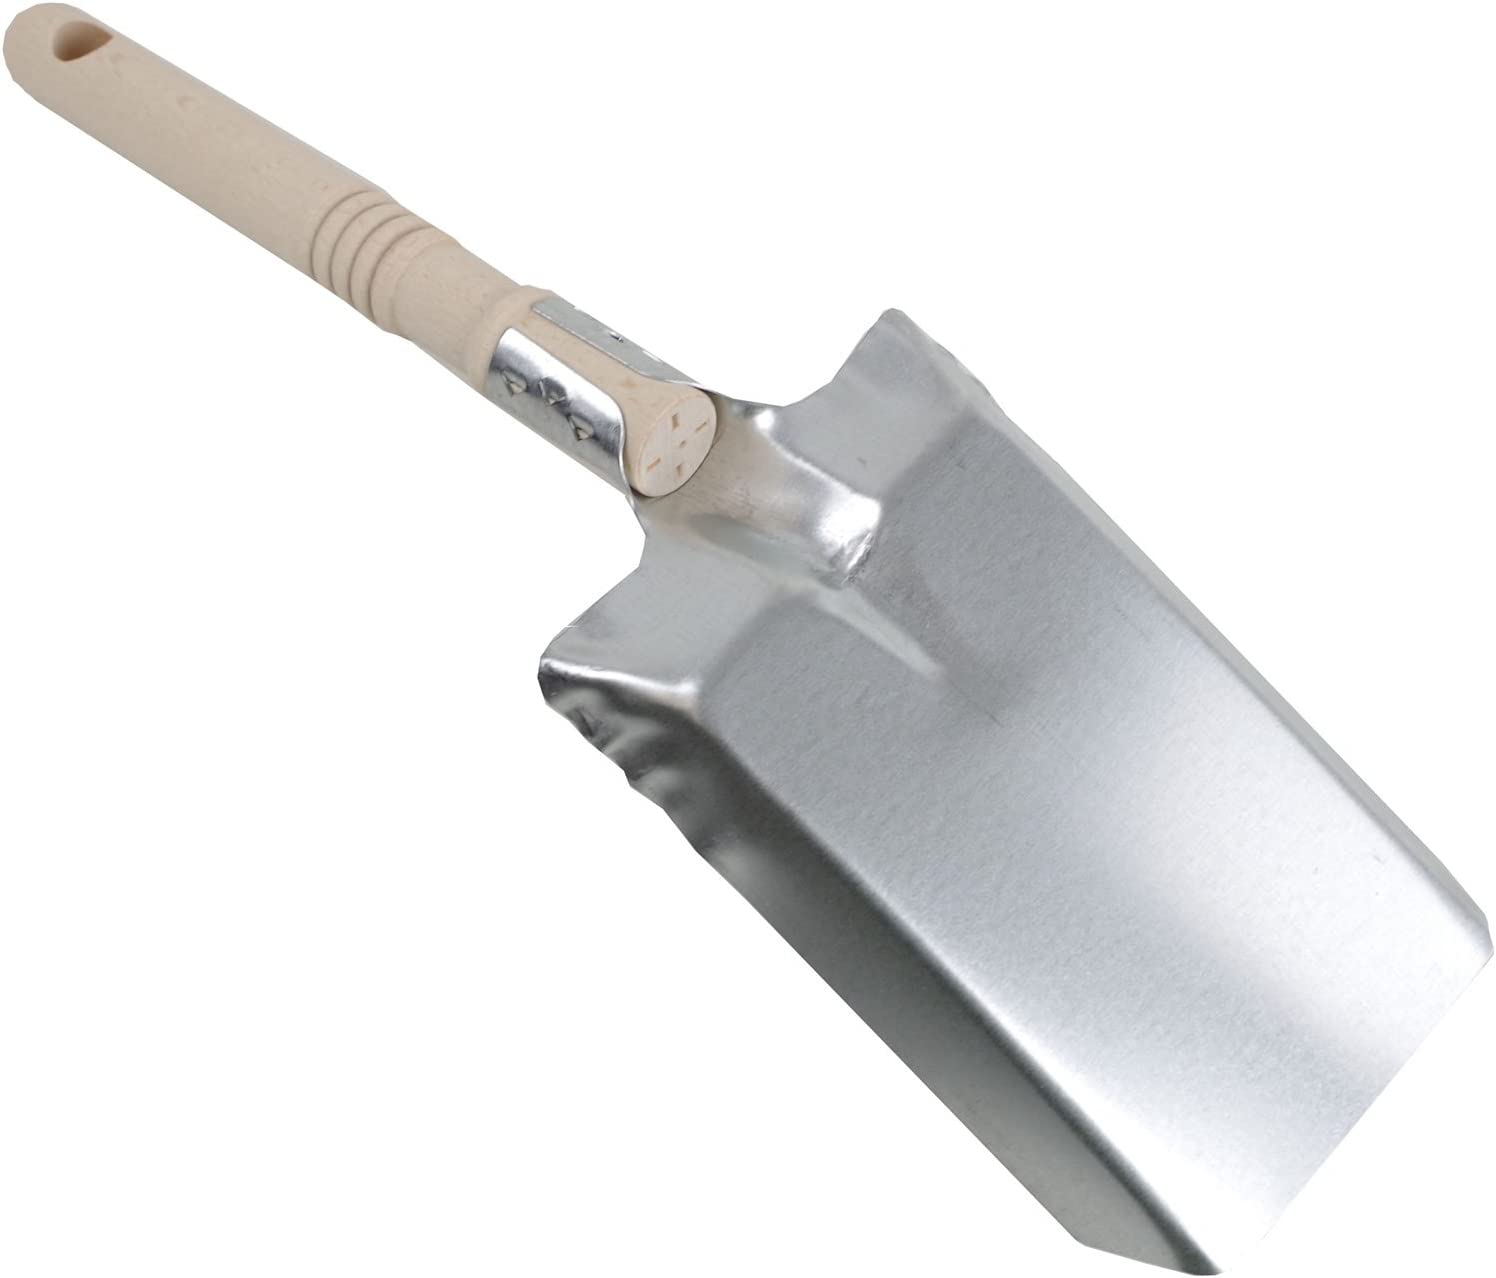 Kamino-Flam Fireplace Coal Shovel with Wooden Handle Dustpan Silver 17 x 10.5 cm Coal Scoop Wooden Handled Shovel approx Galvanised Steel Ash Shovel with Perforated Handle